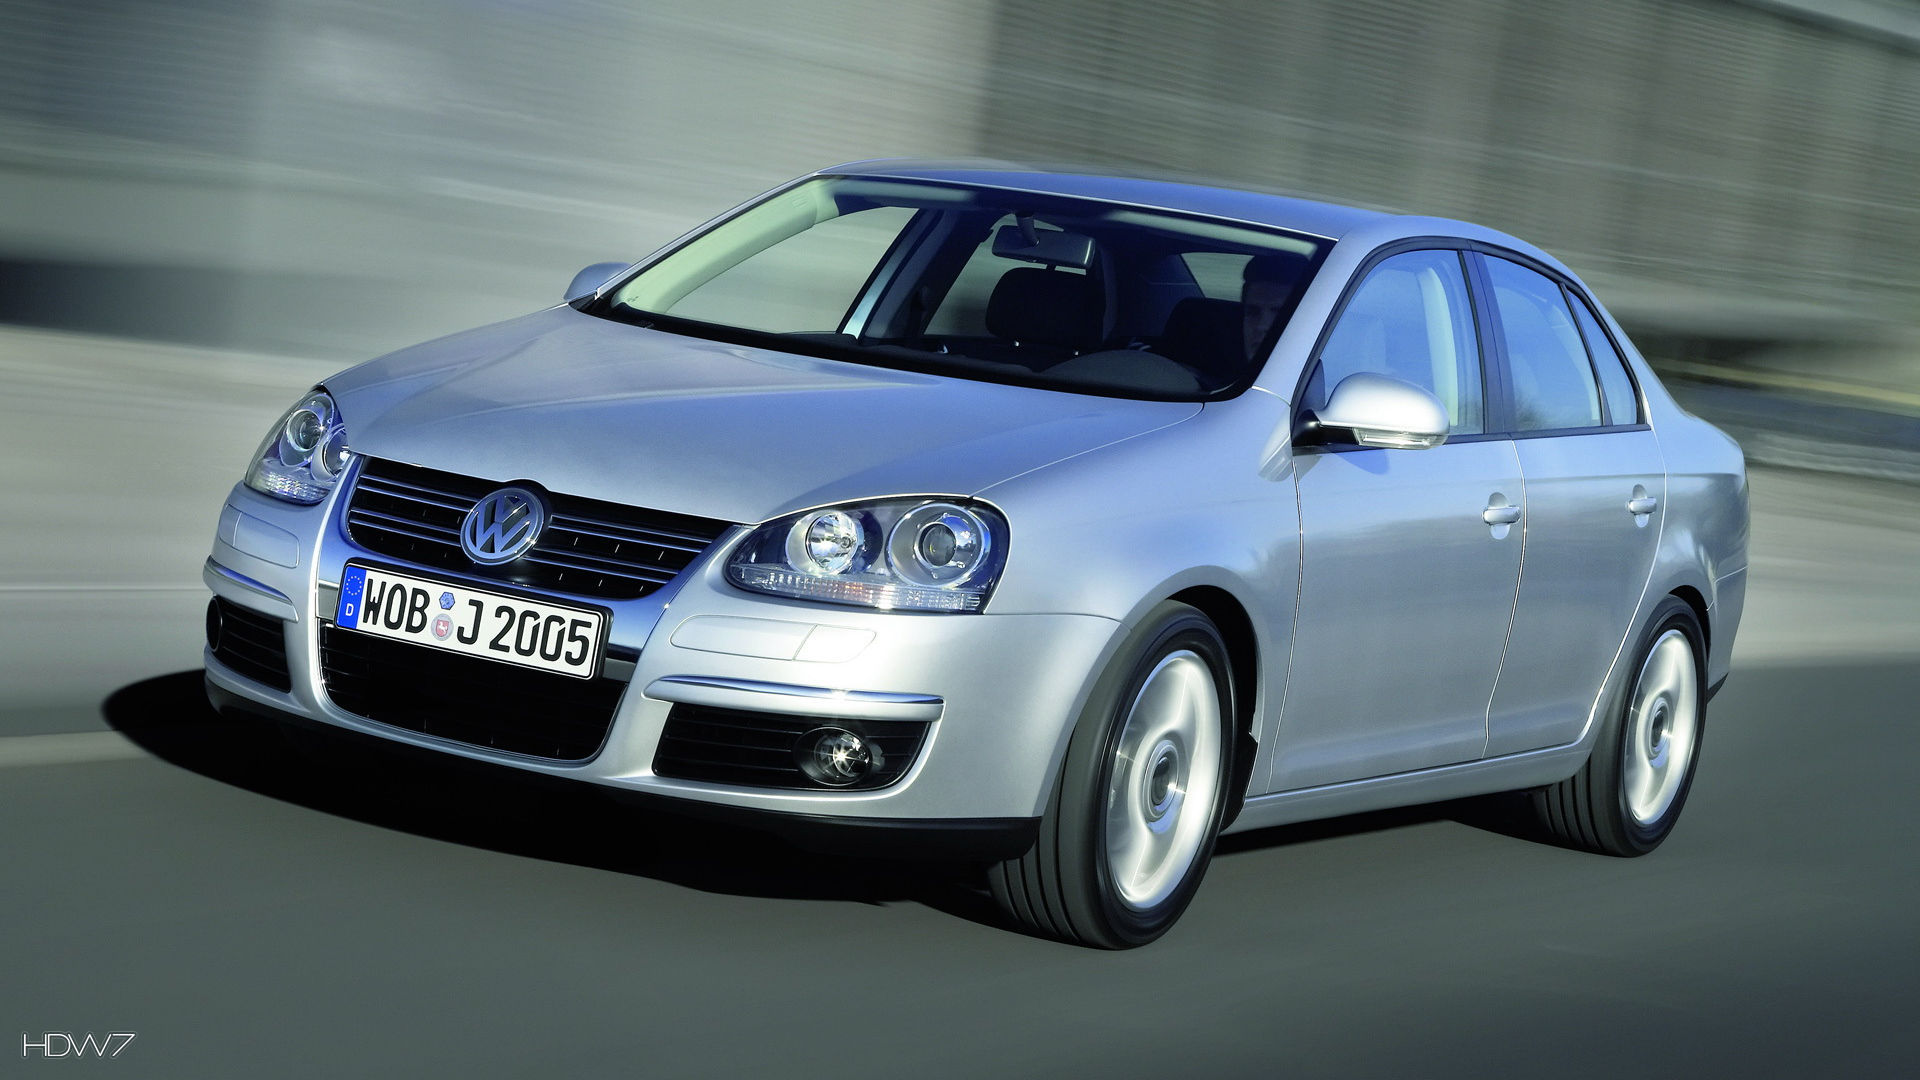 volkswagen jetta 2005 car hd wallpaper